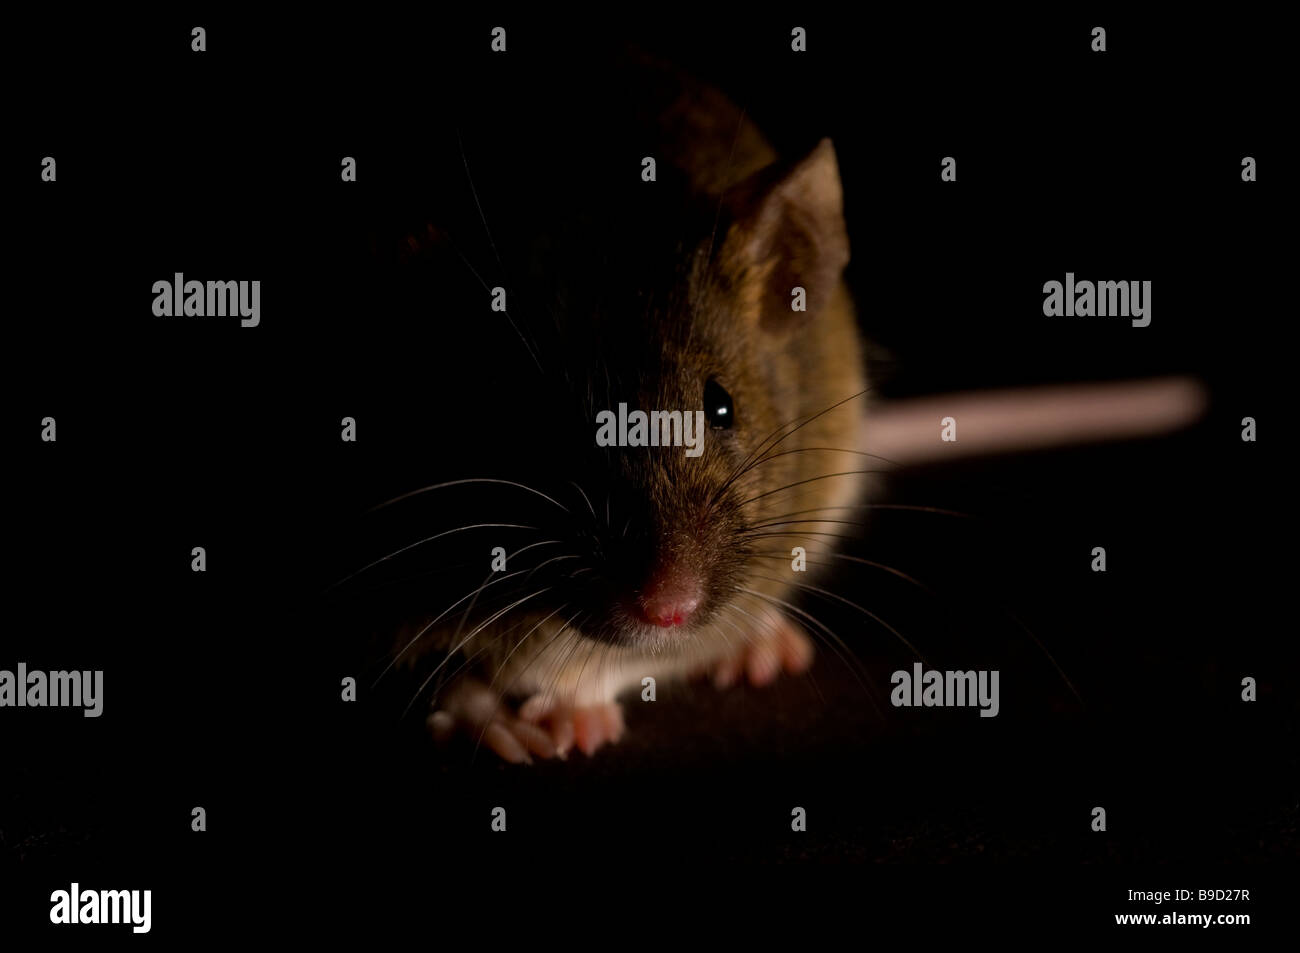 Mouse - Stock Image